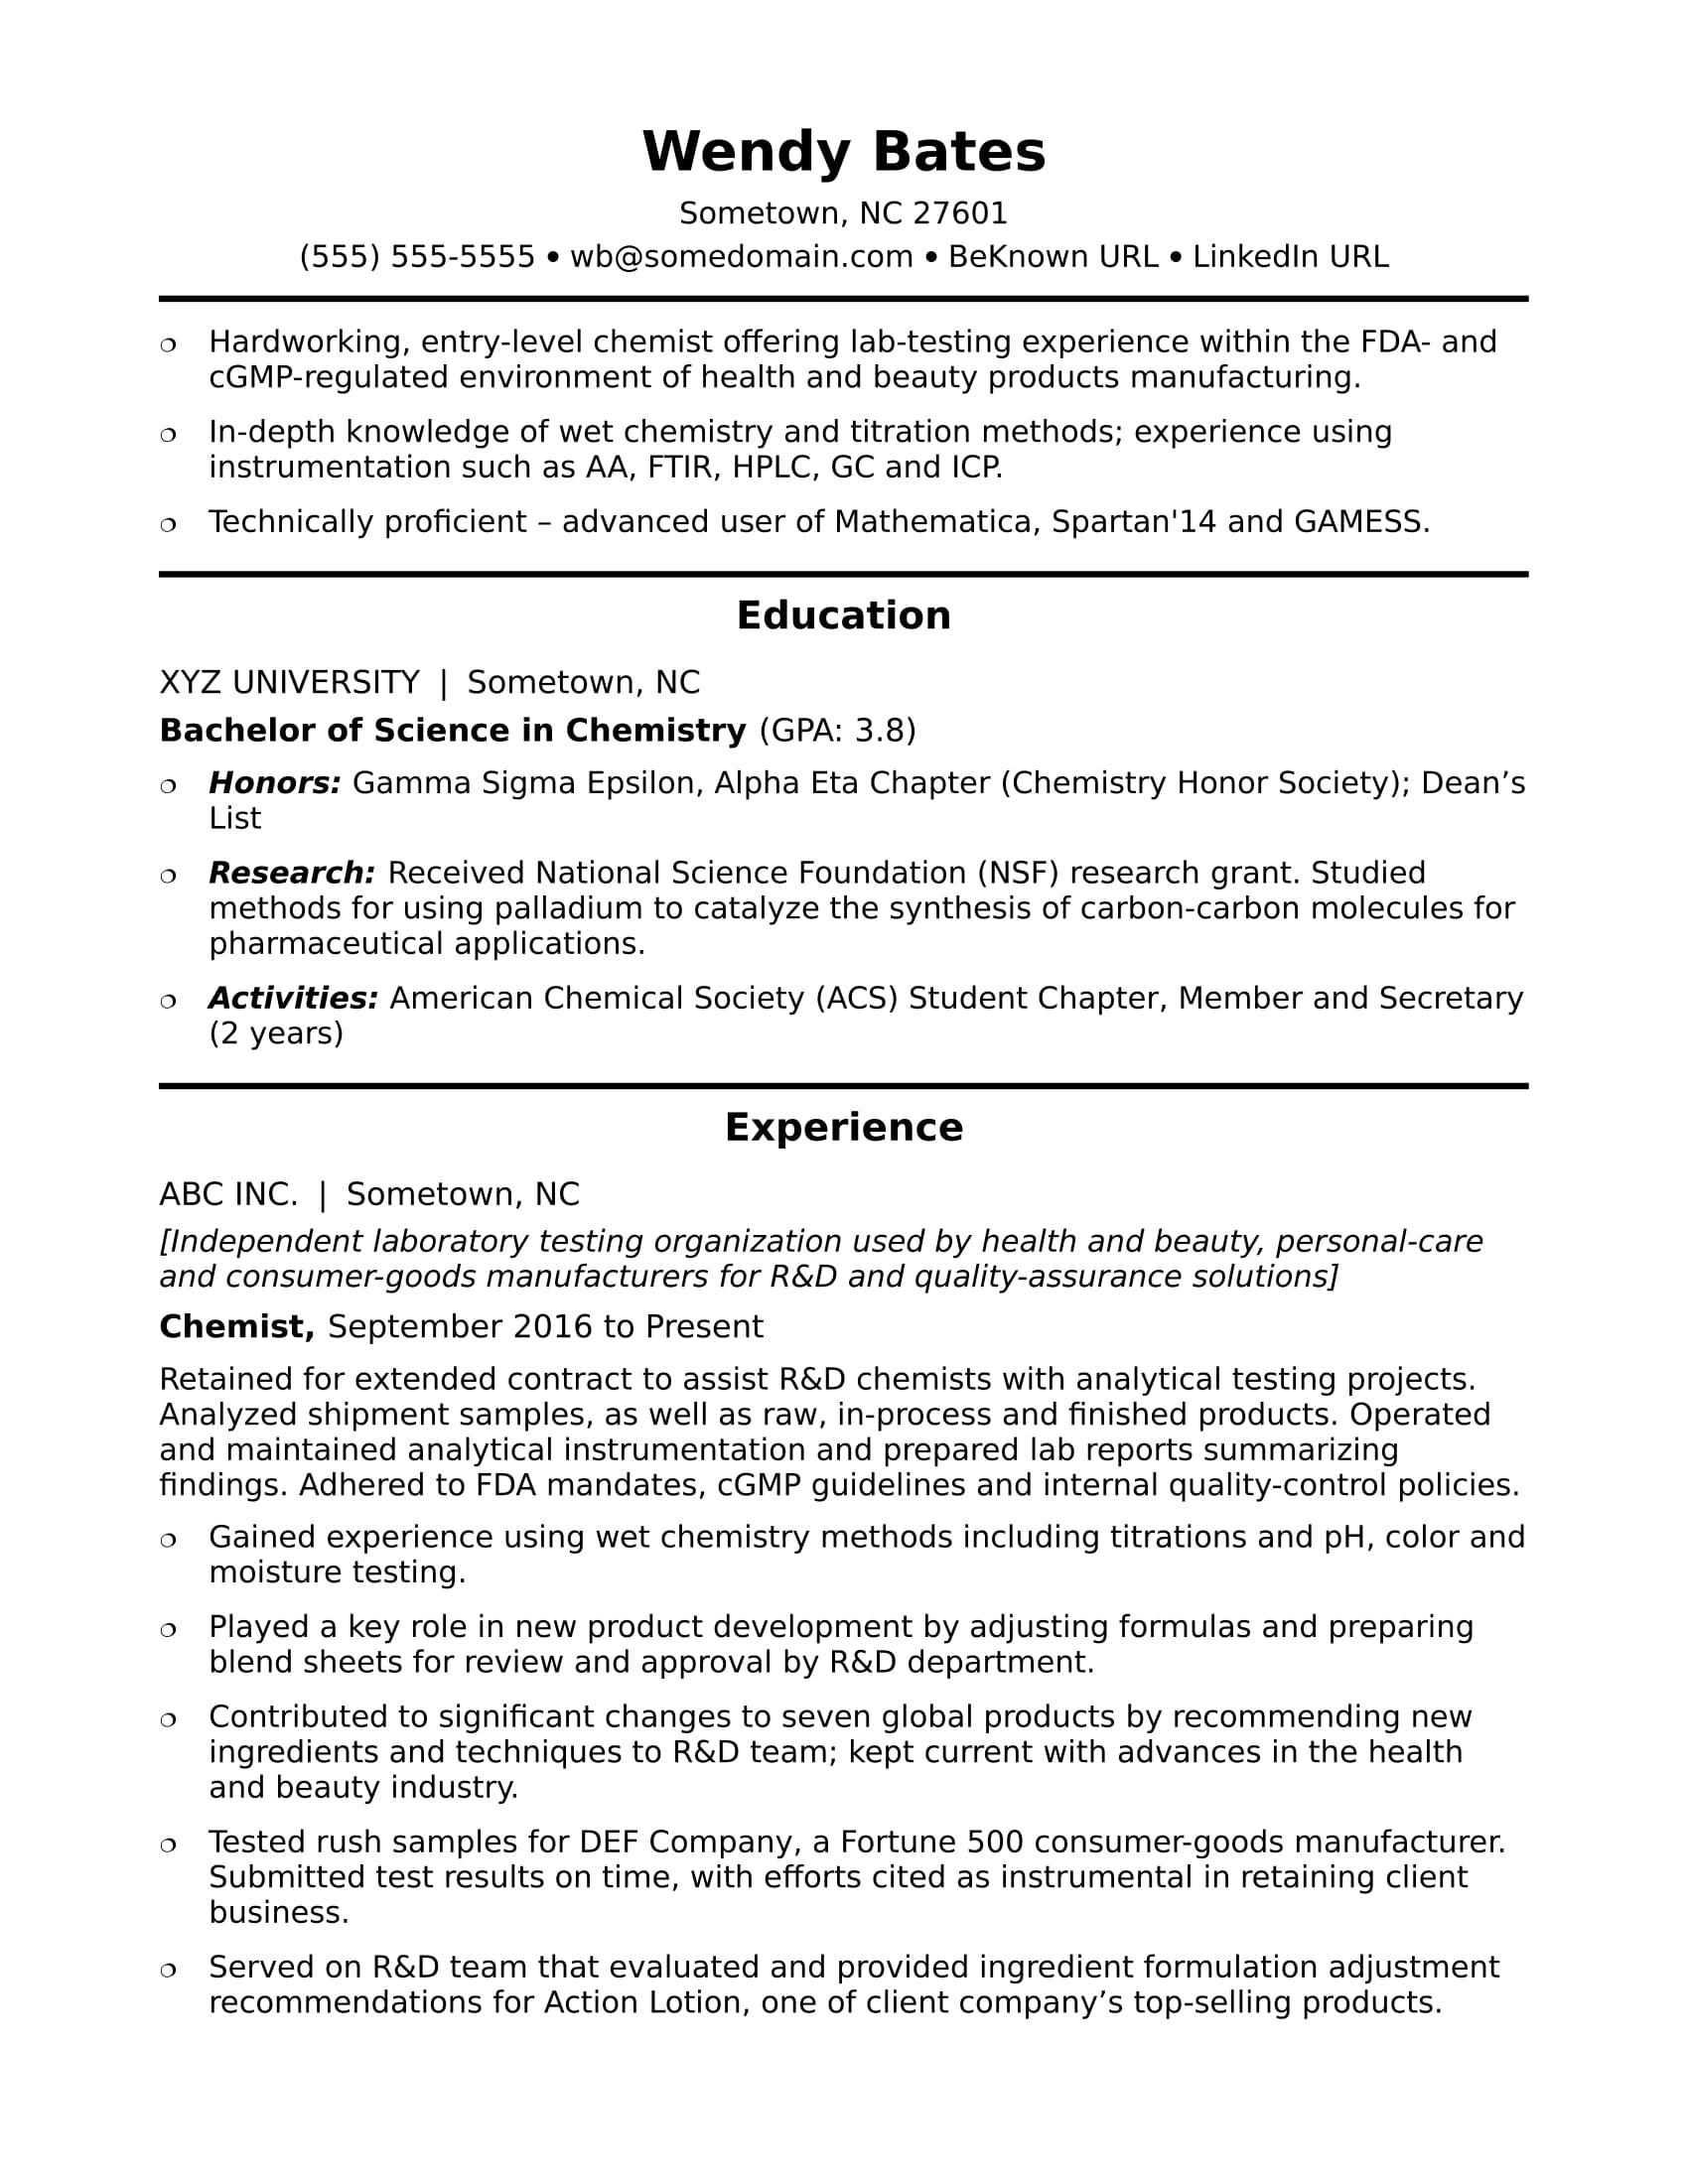 sample resume for an entry level chemist